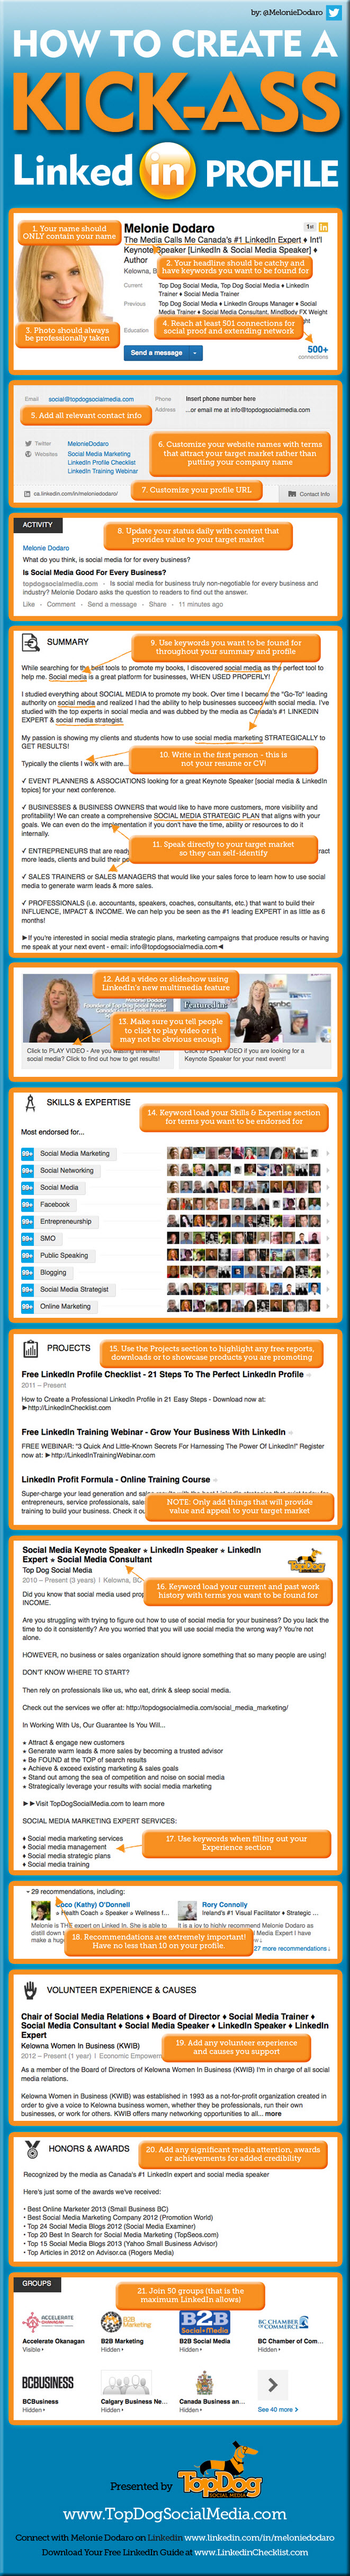 How to create an awesome LinkedIn Profile